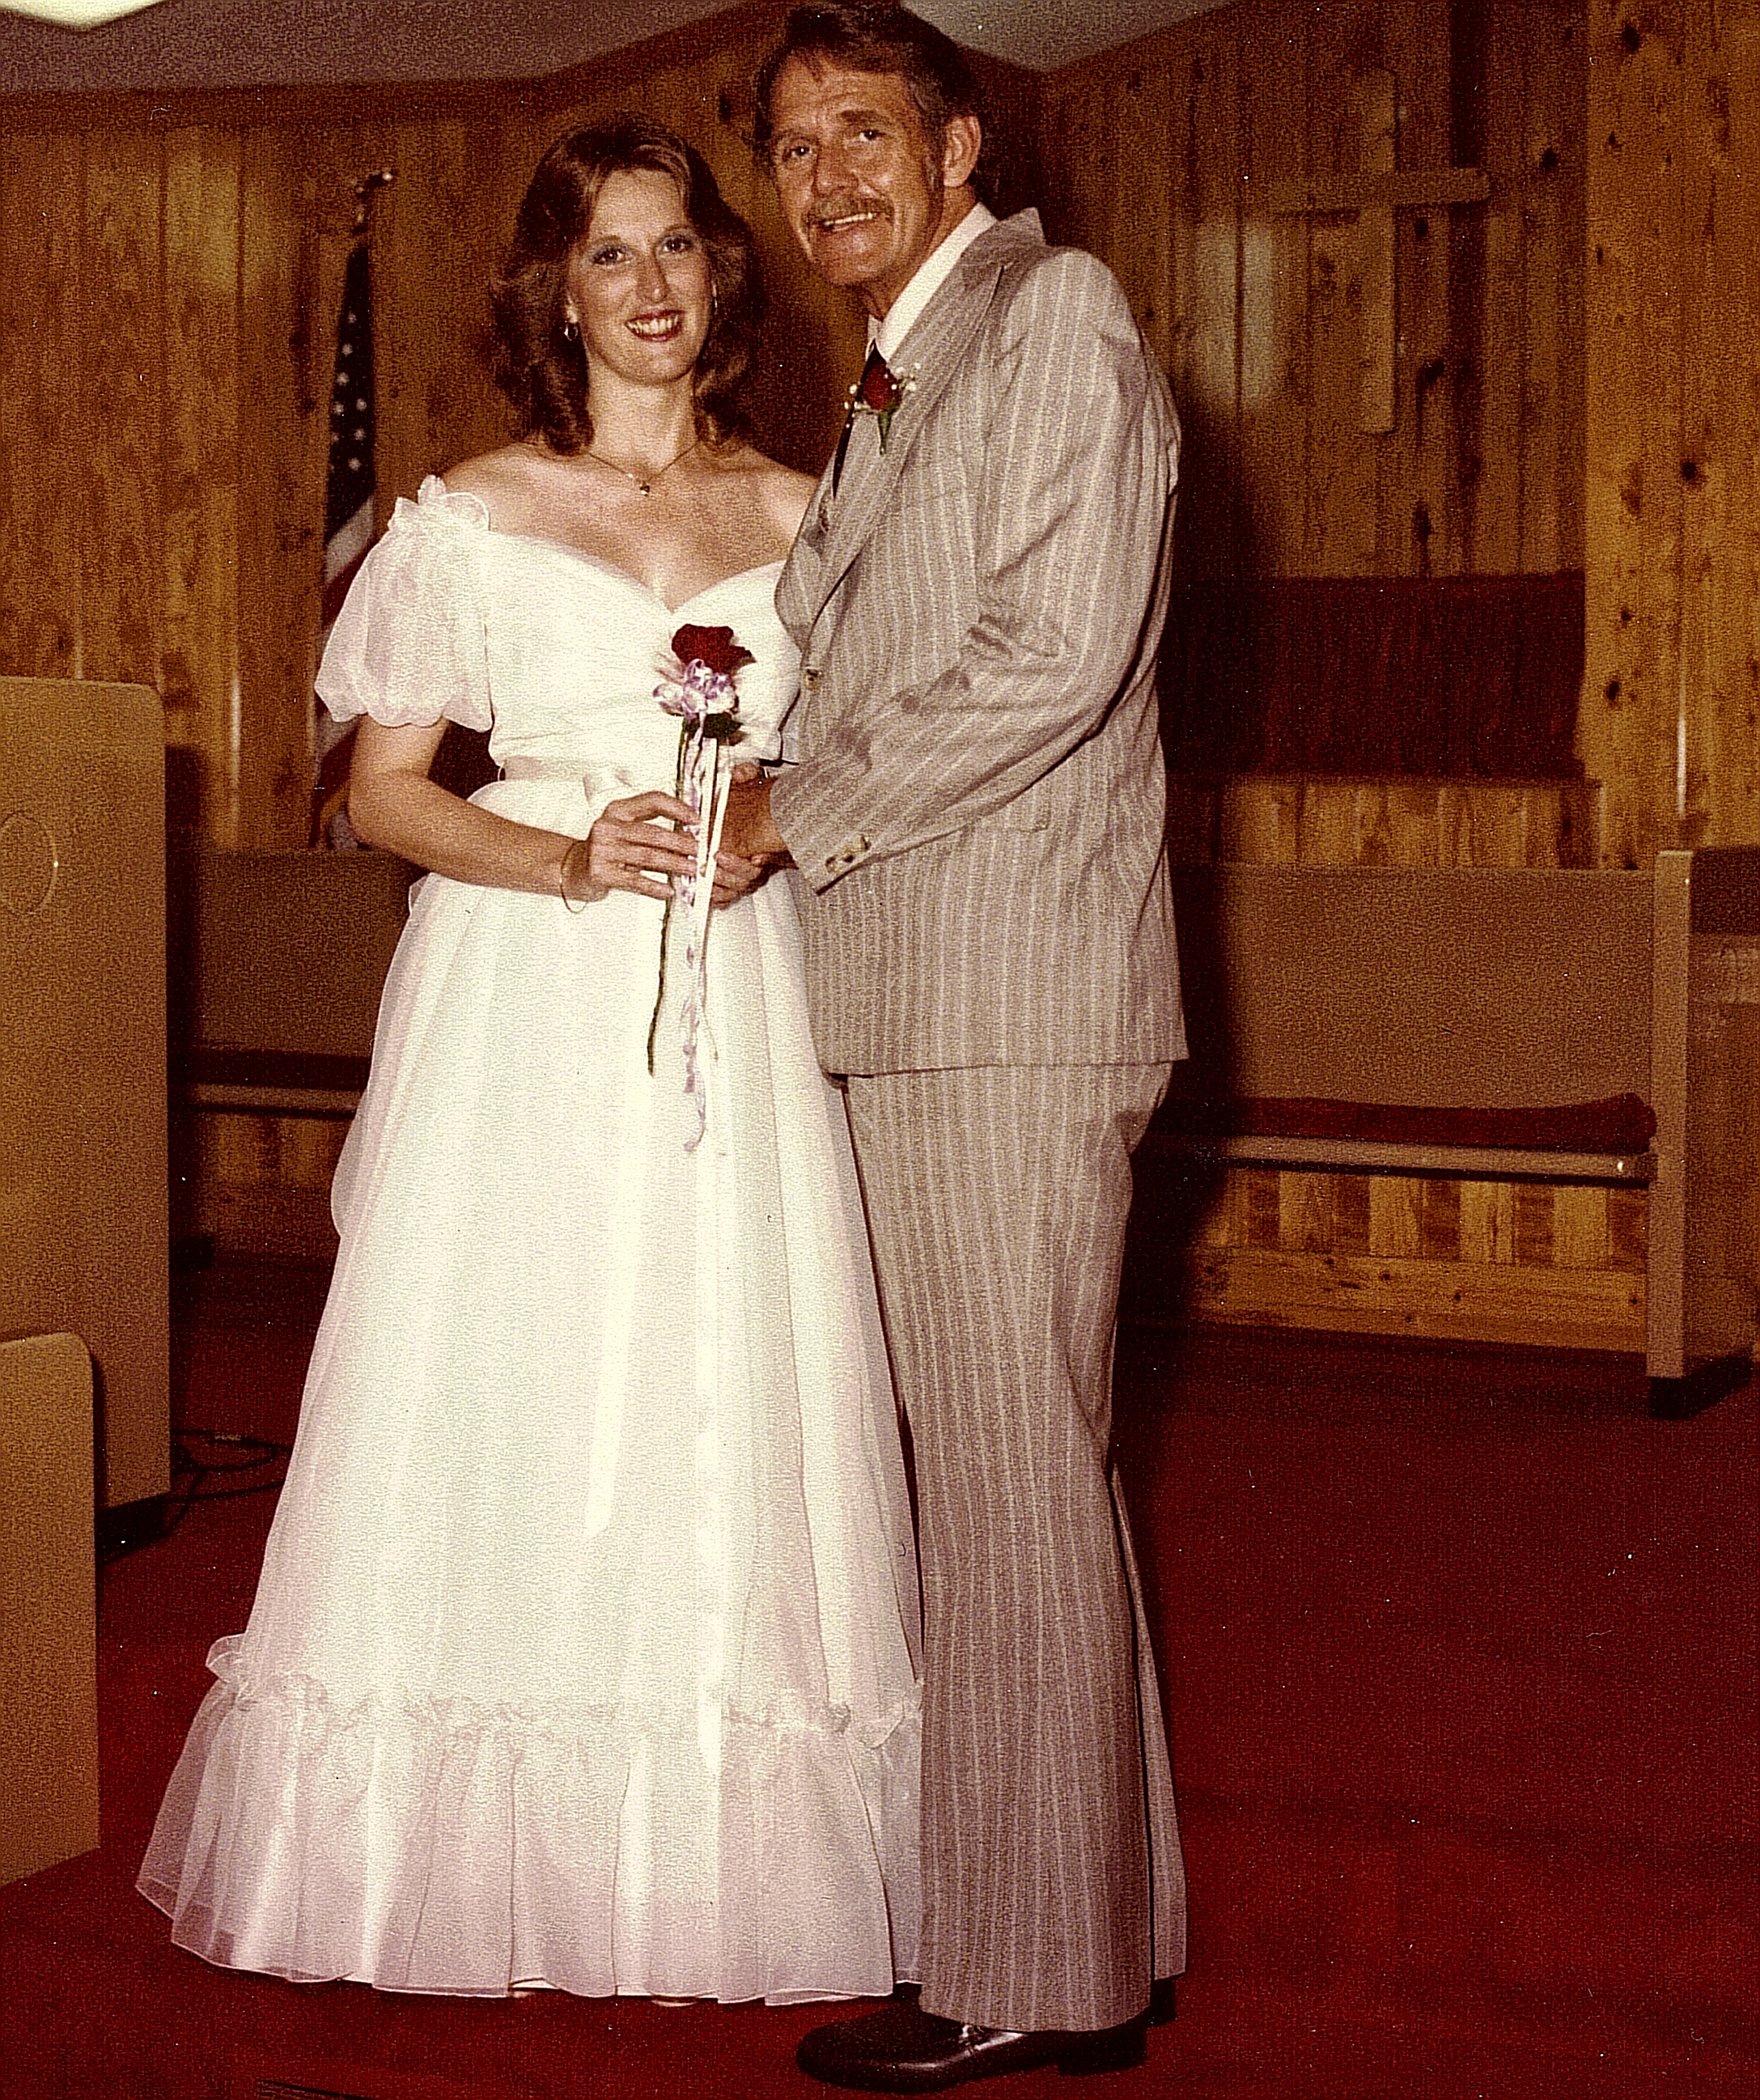 Luke_Darlina_Wedding.JPG